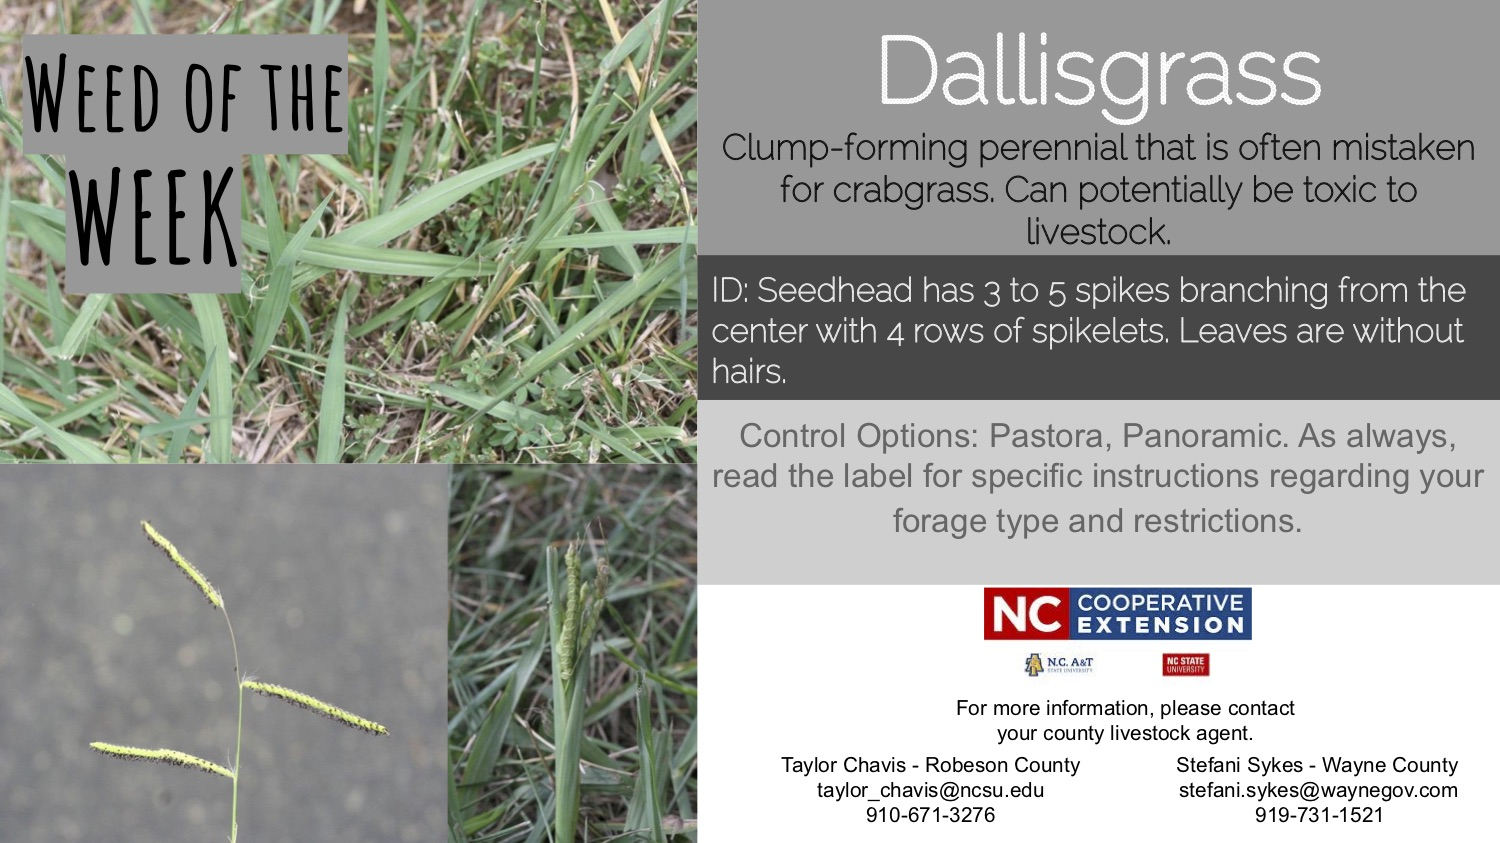 Information on the weed Dallisgrass